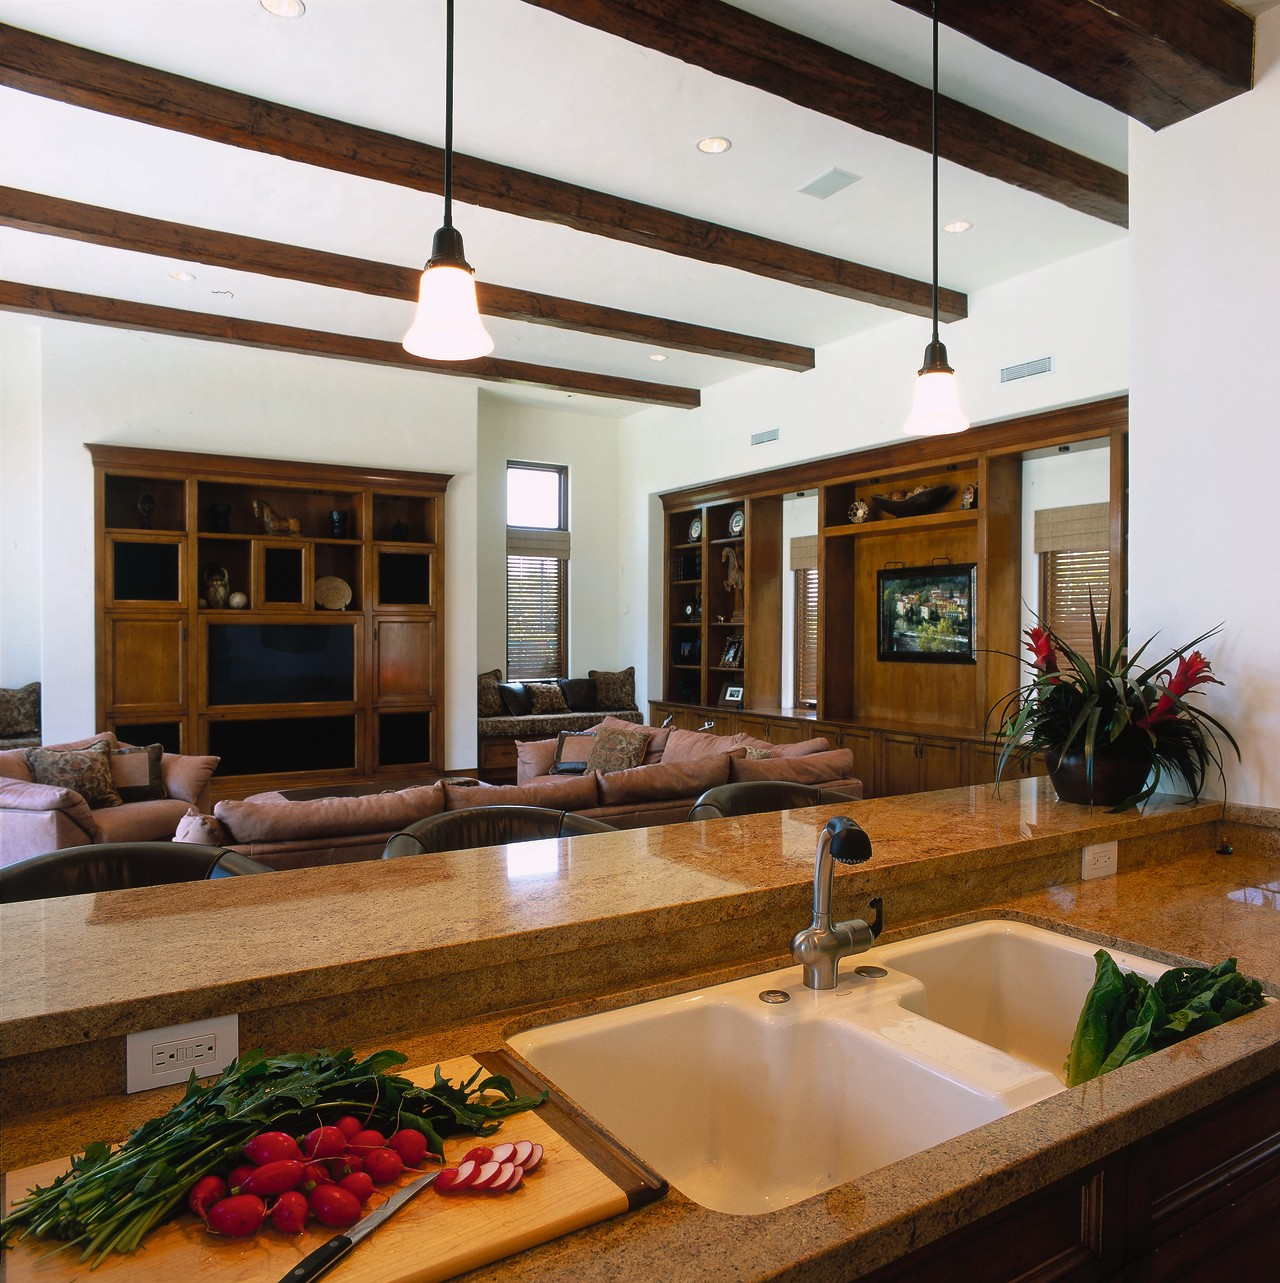 The living area, viewed from the kitchen countertop, interior design, living room, real estate, white, brown